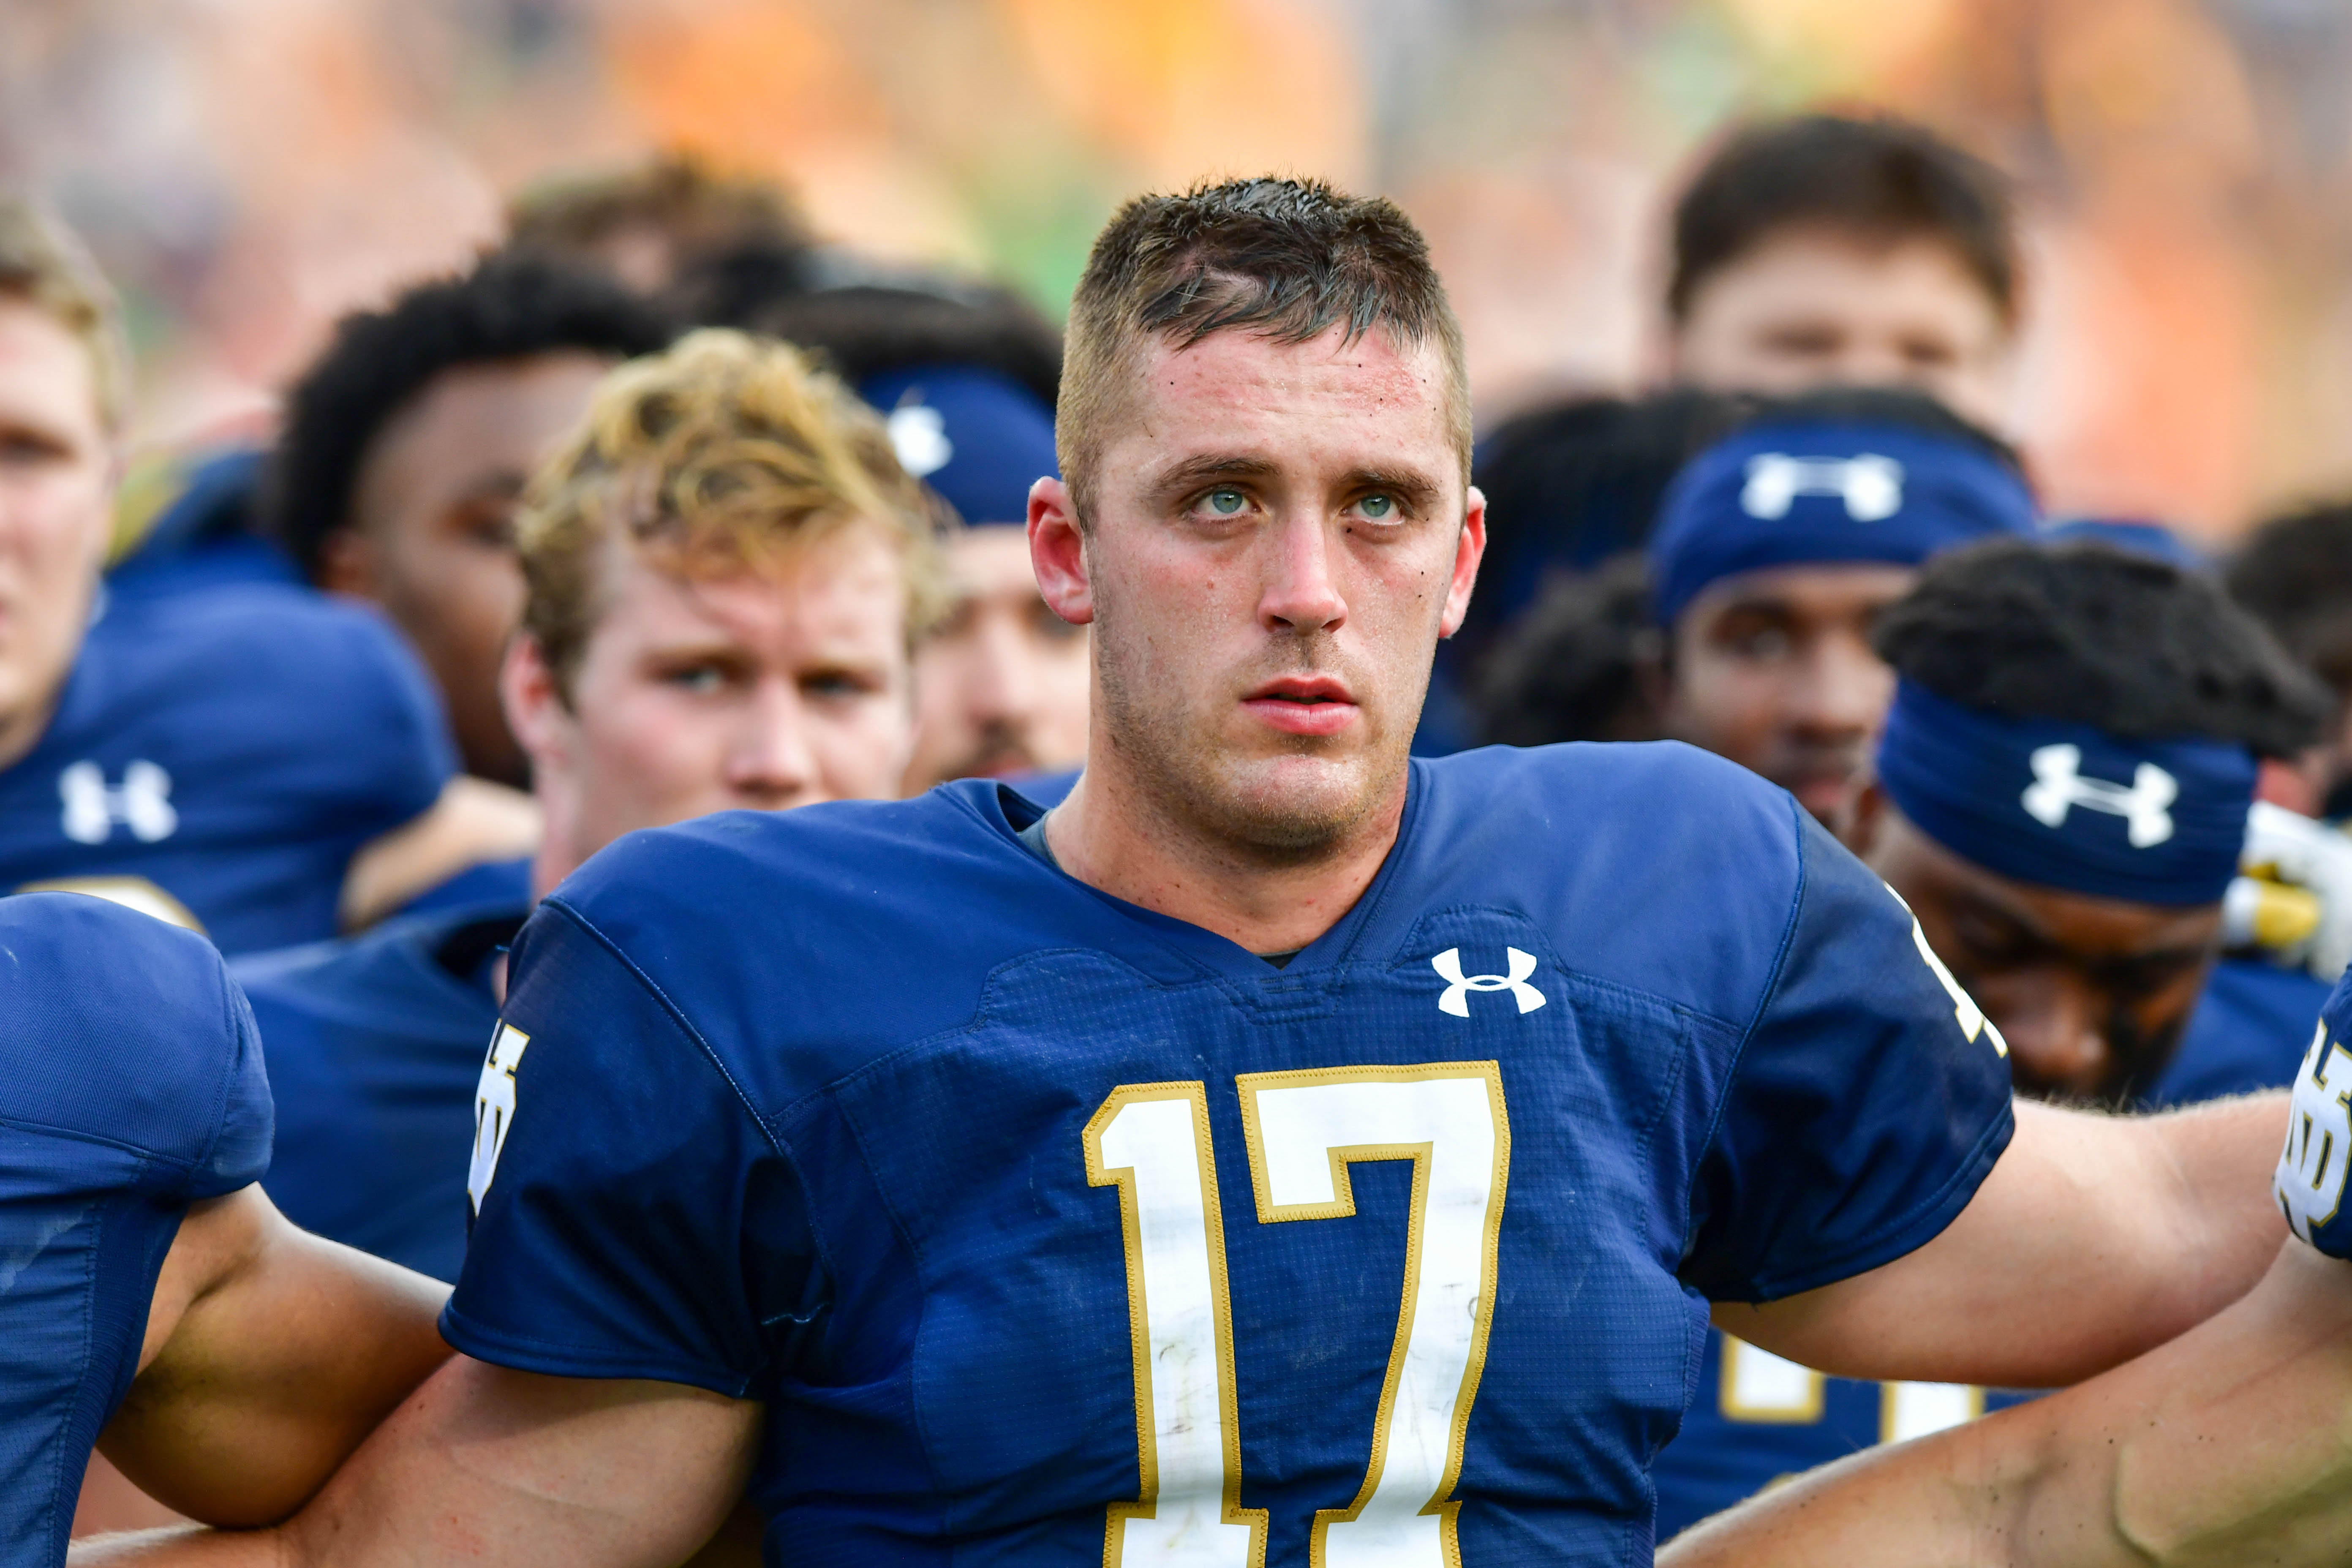 Notre Dame Fighting Irish quarterback Jack Coan joins his teammates for the Notre Dame Alma Mater after the game against the Toledo Rockets at Notre Dame Stadium.